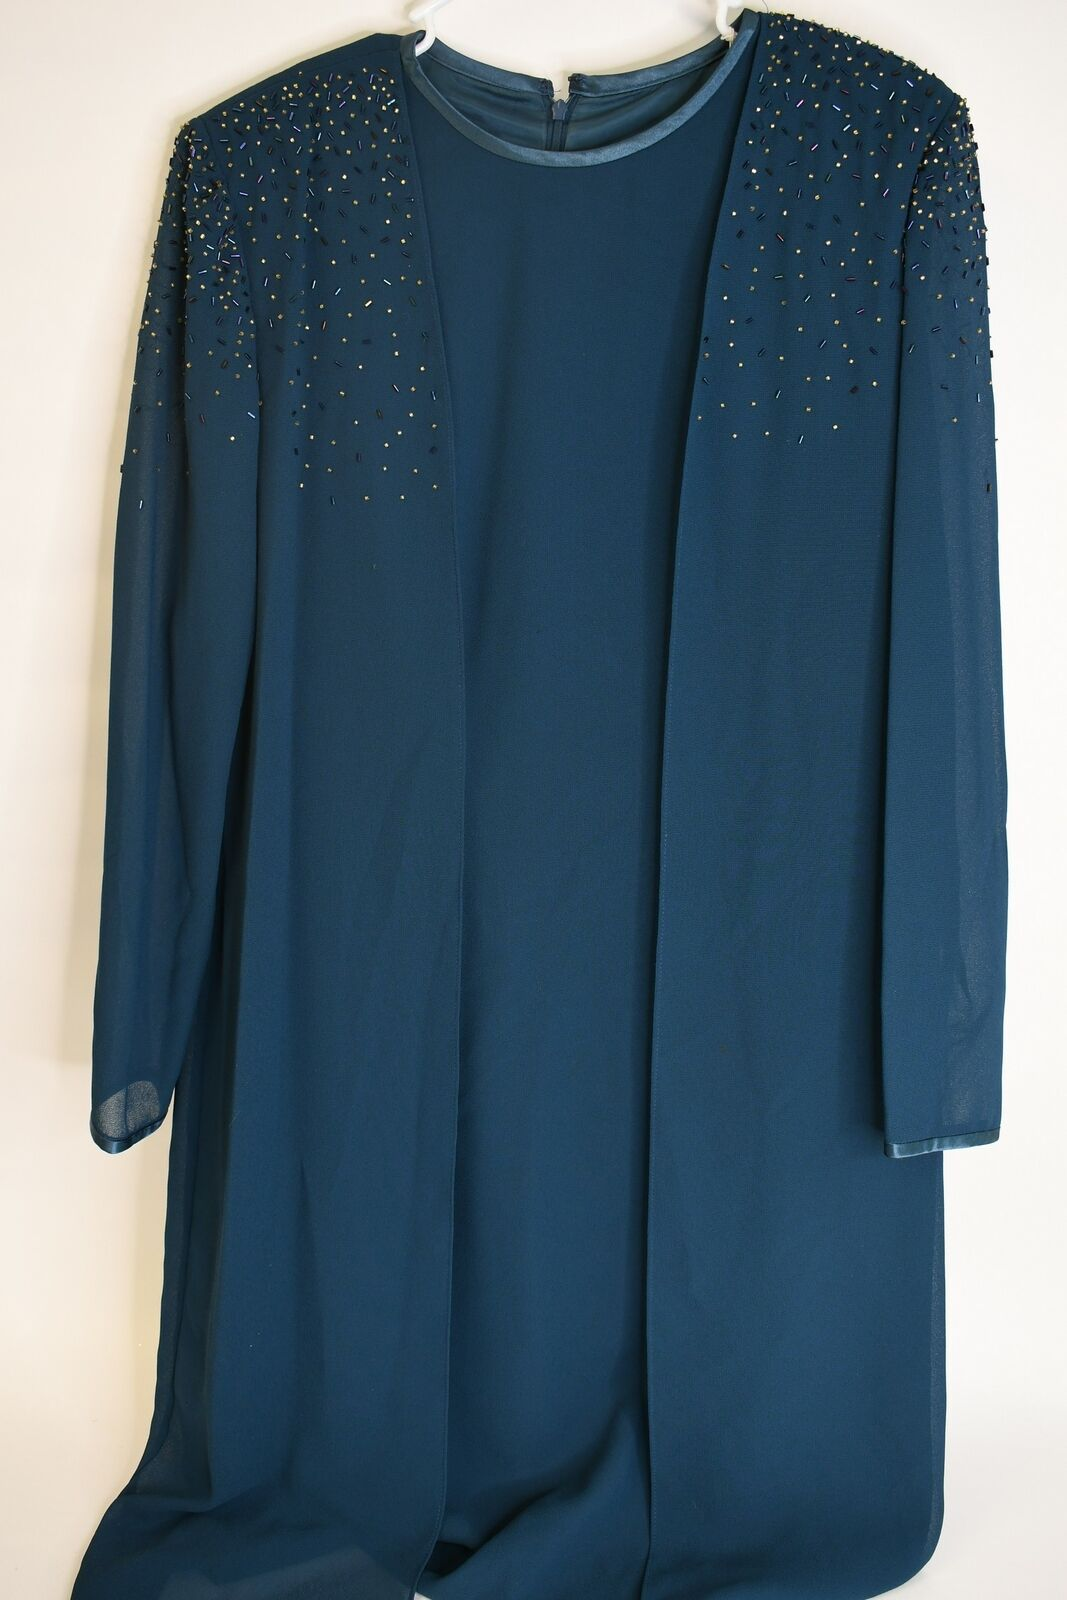 After Dark Dark Teal Evening Gown W/Multicolor Beaded Attached Jacket Size 14